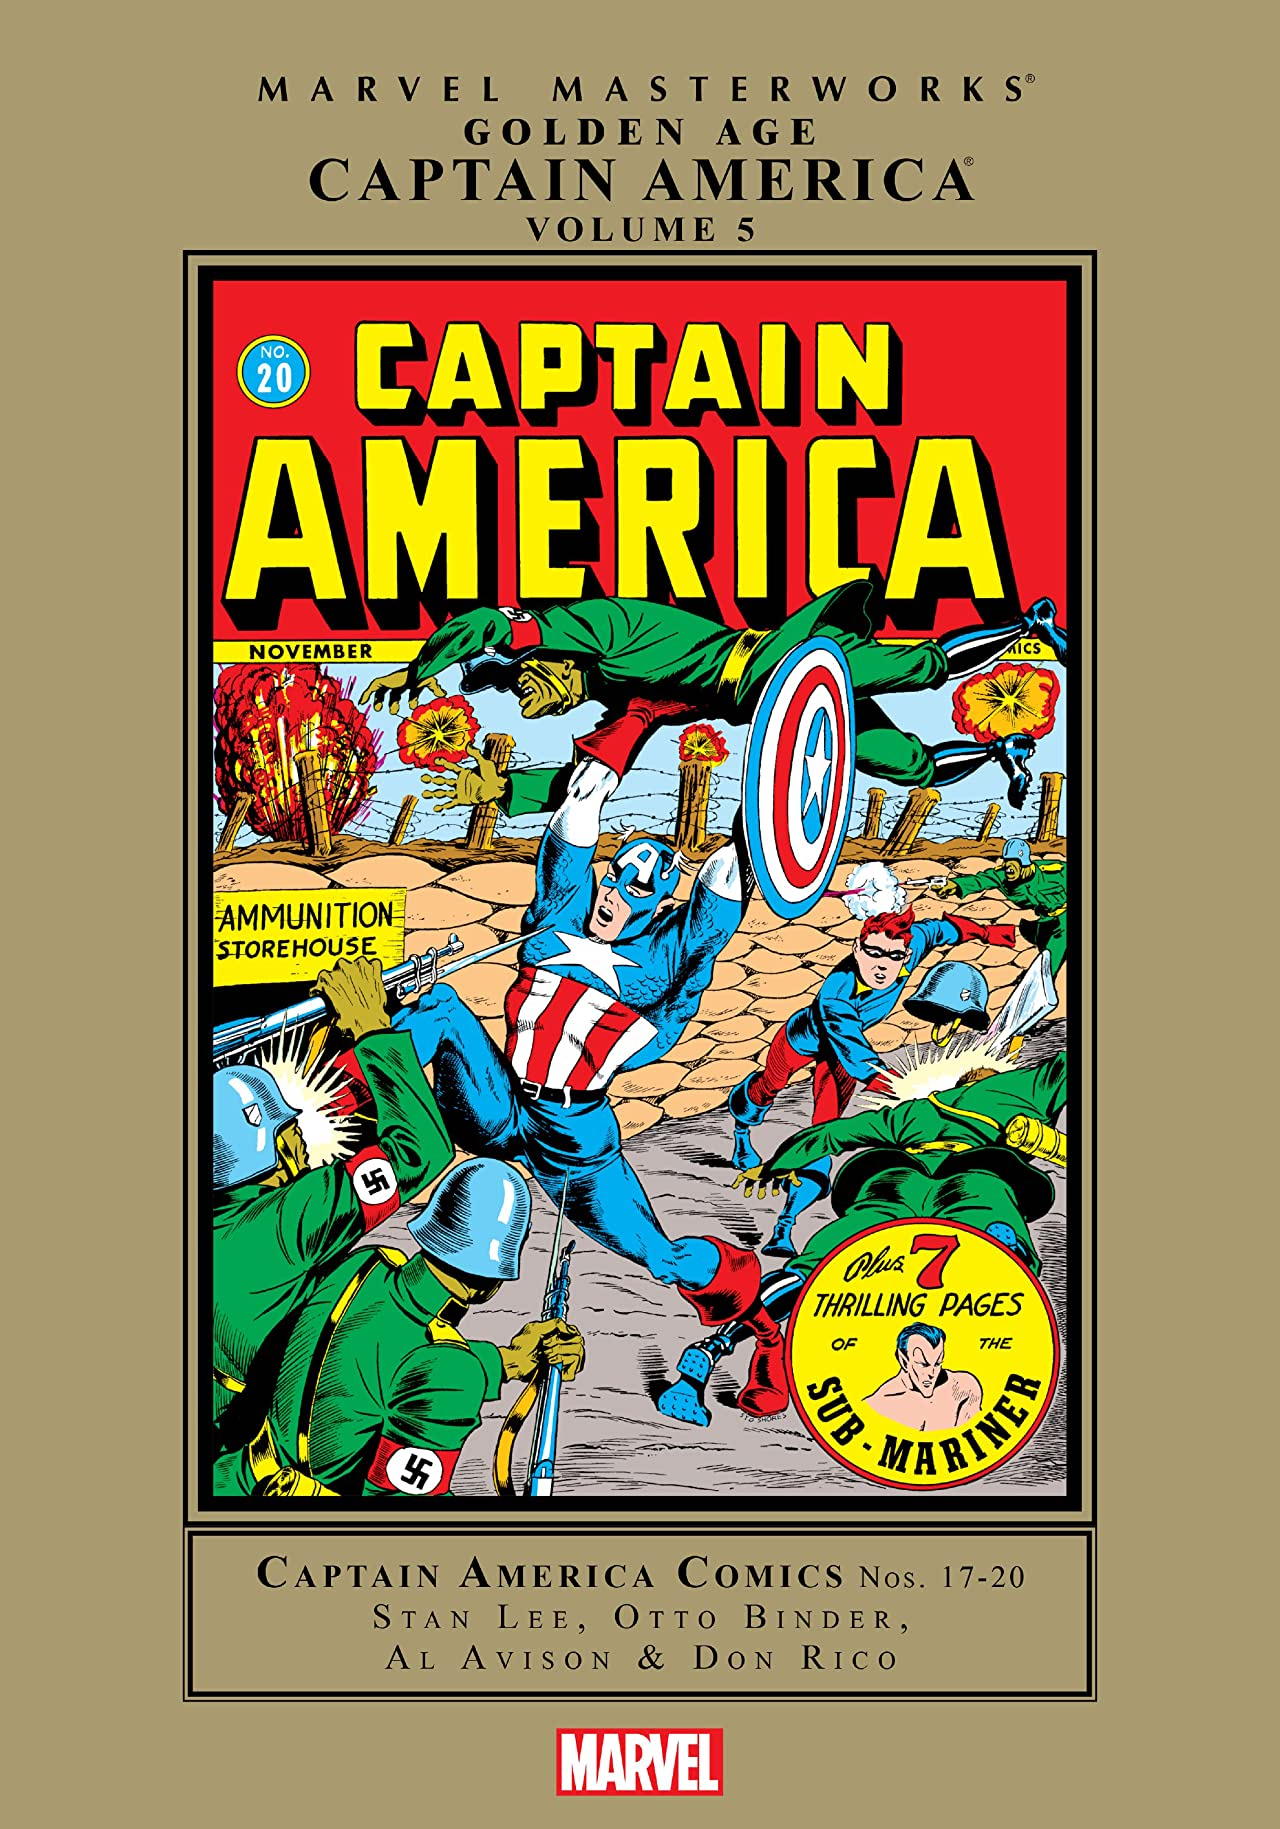 Captain America Golden Age Masterworks Vol. 5